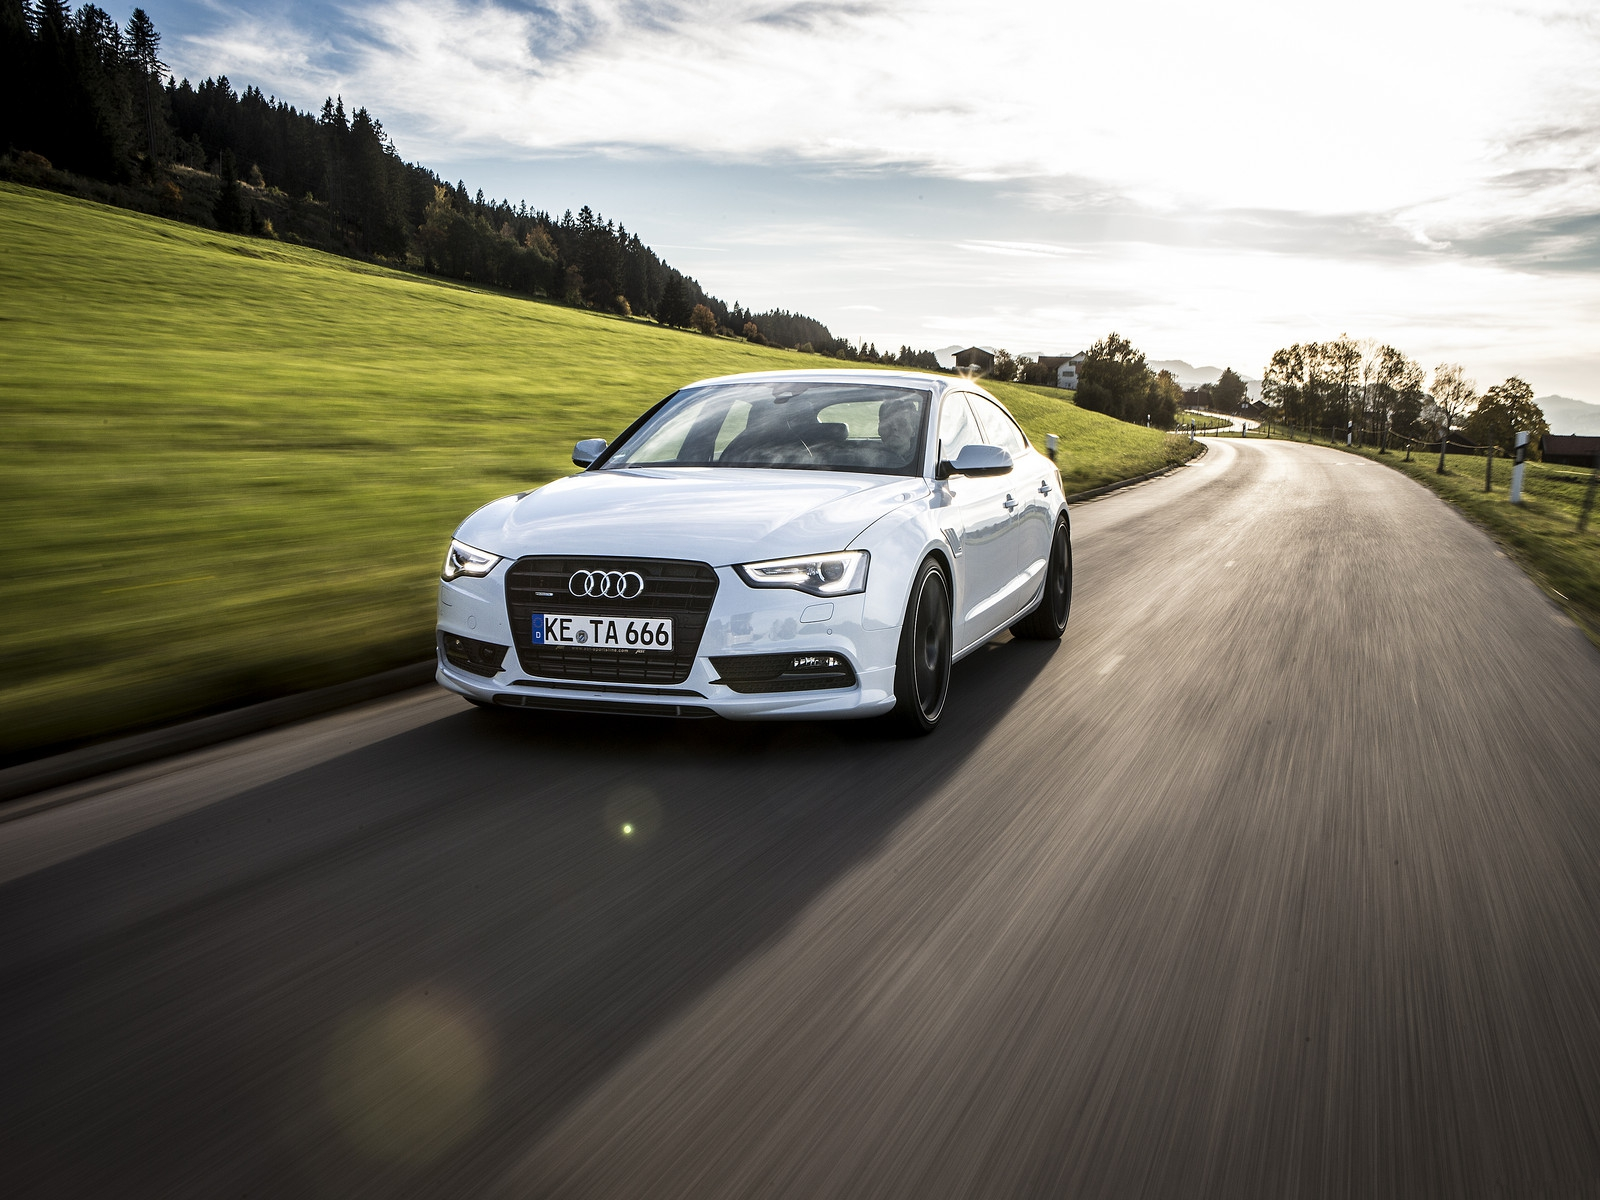 1600x1200 - Audi A5 Wallpapers 20